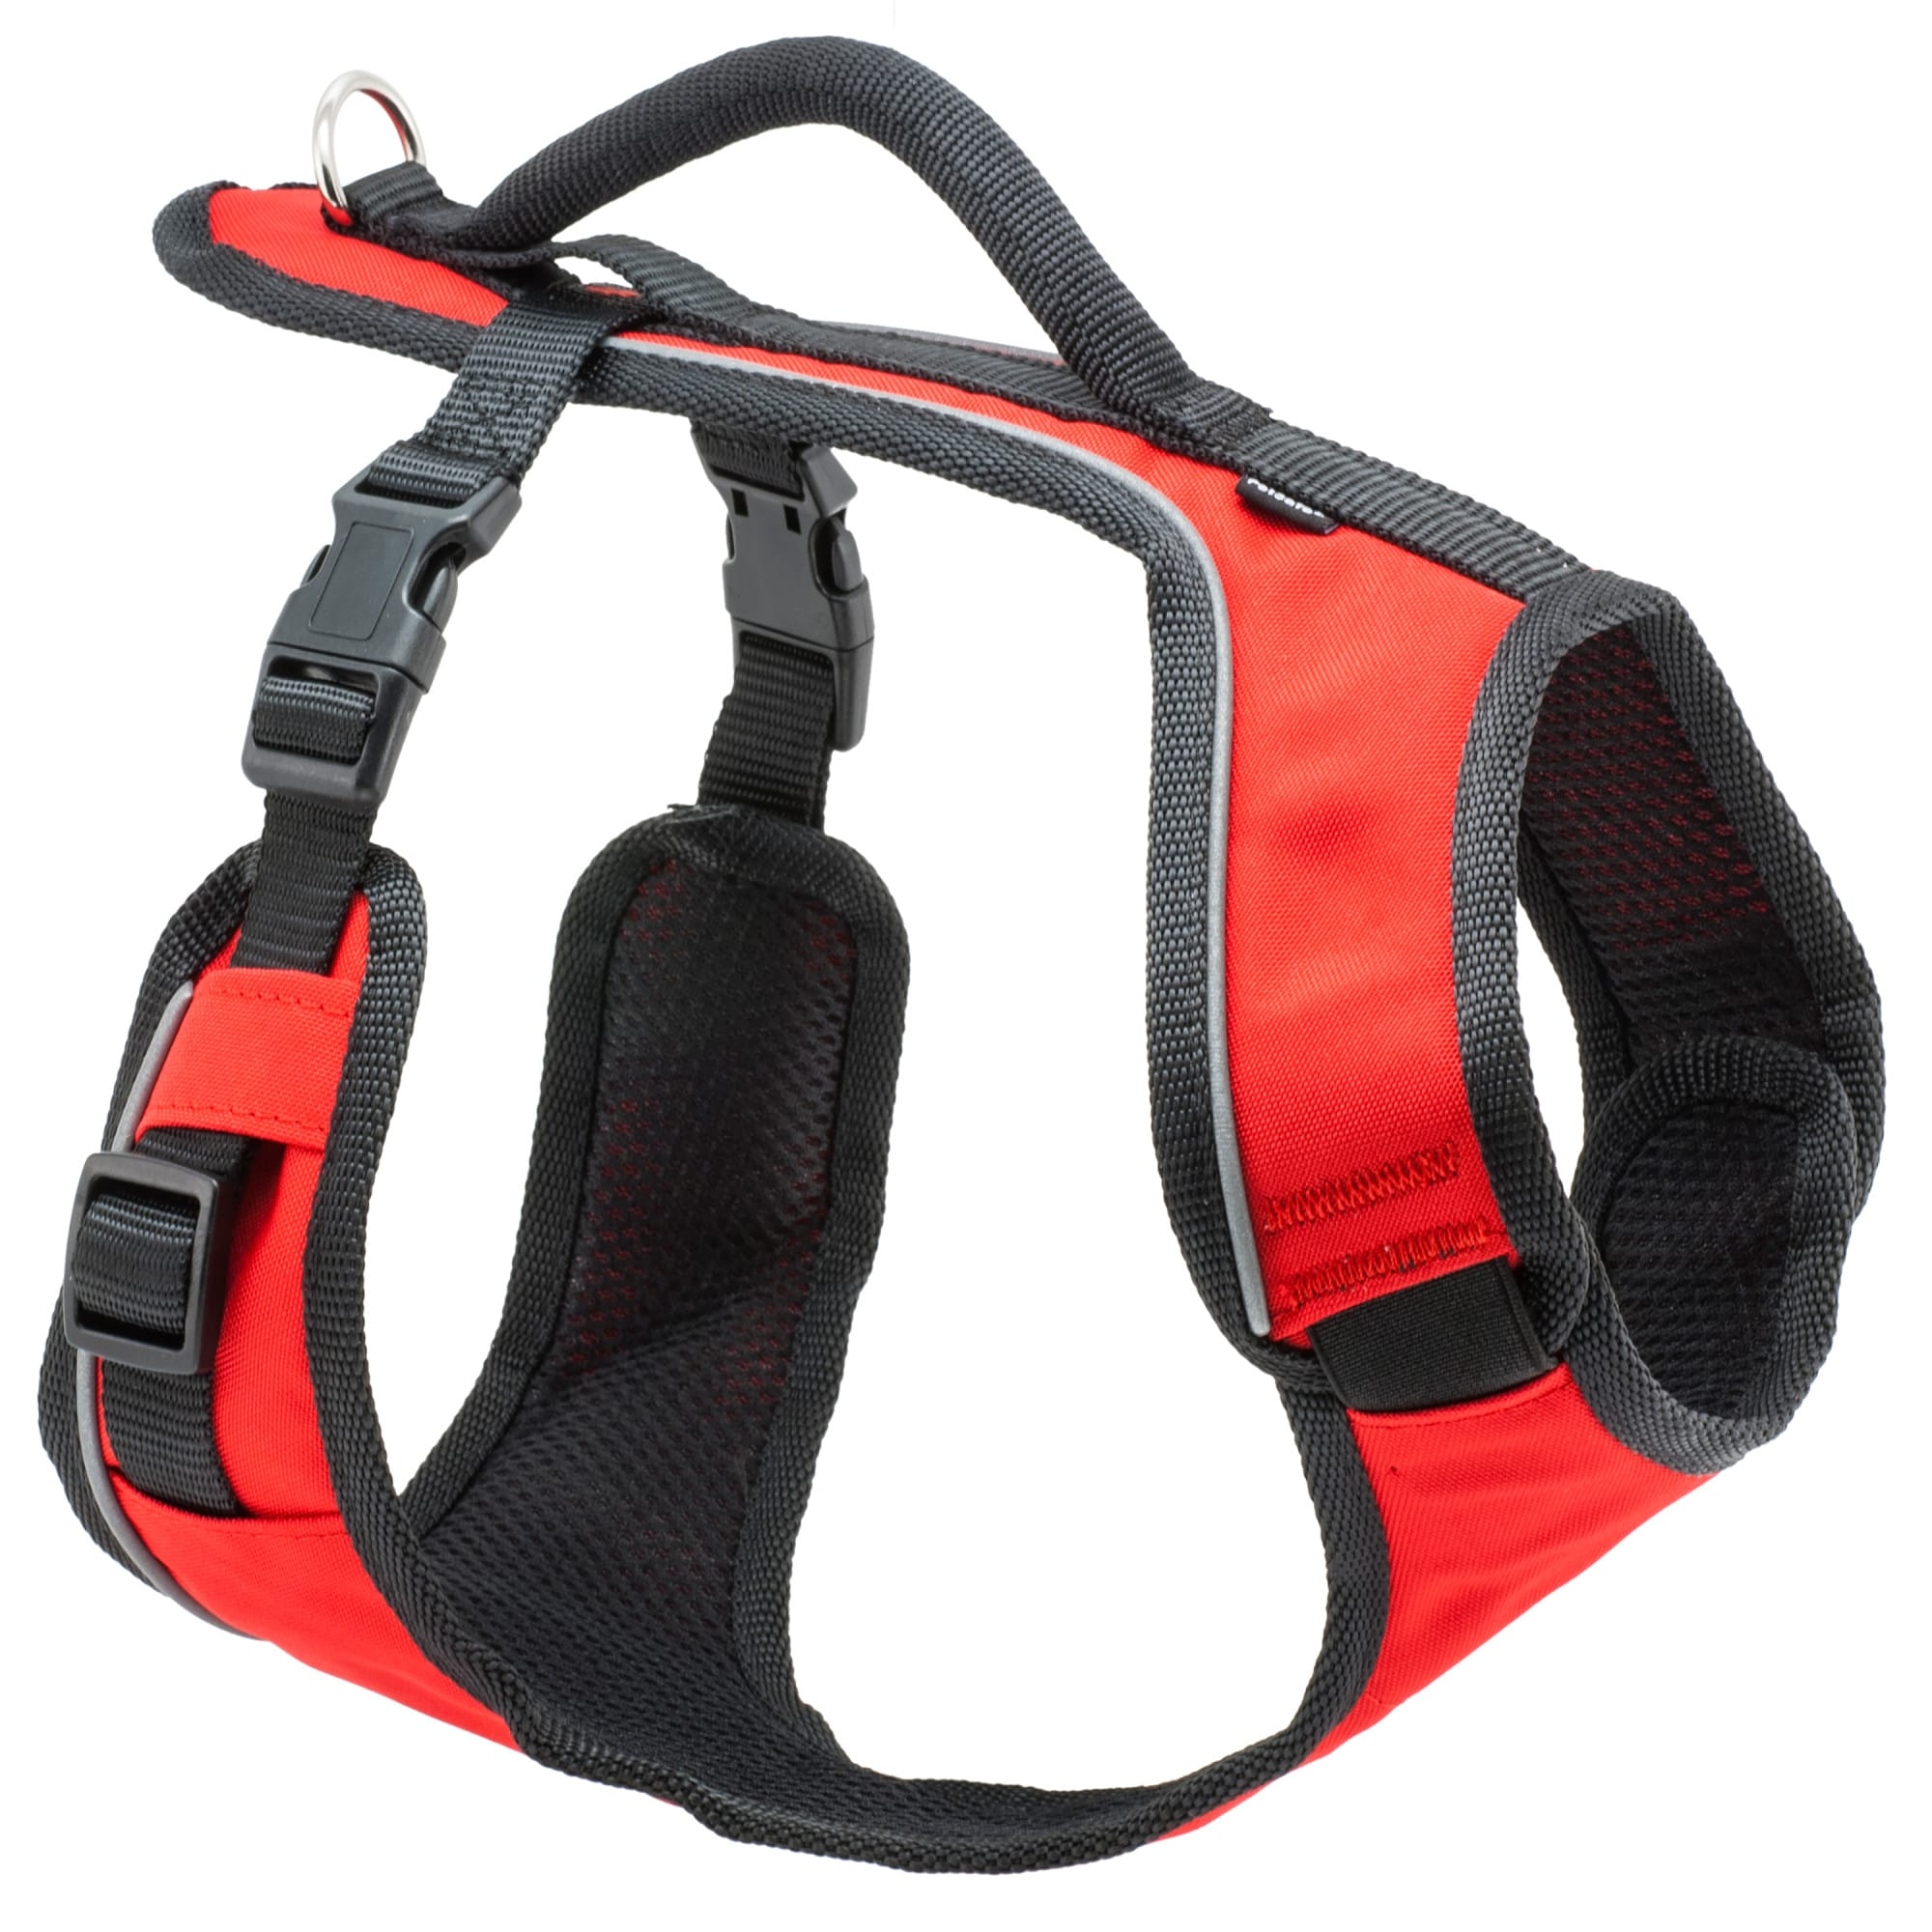 Take your dog on all of life\\\'s adventures in comfort and style with the PetSafe(Registered Trademark) EasySport Harness. The harness is fully adjustable and padded for comfort and features an elasticized neckline for a cozy fit. Two quick-snap buckles make the EasySport Harness easier to get on and off. The top handle provides an extra degree of safety when you need to control your dog quickly. Ideal for everyday wear, the EasySport Harness lets your dog enjoy life\\\'s adventures in comfort and style.